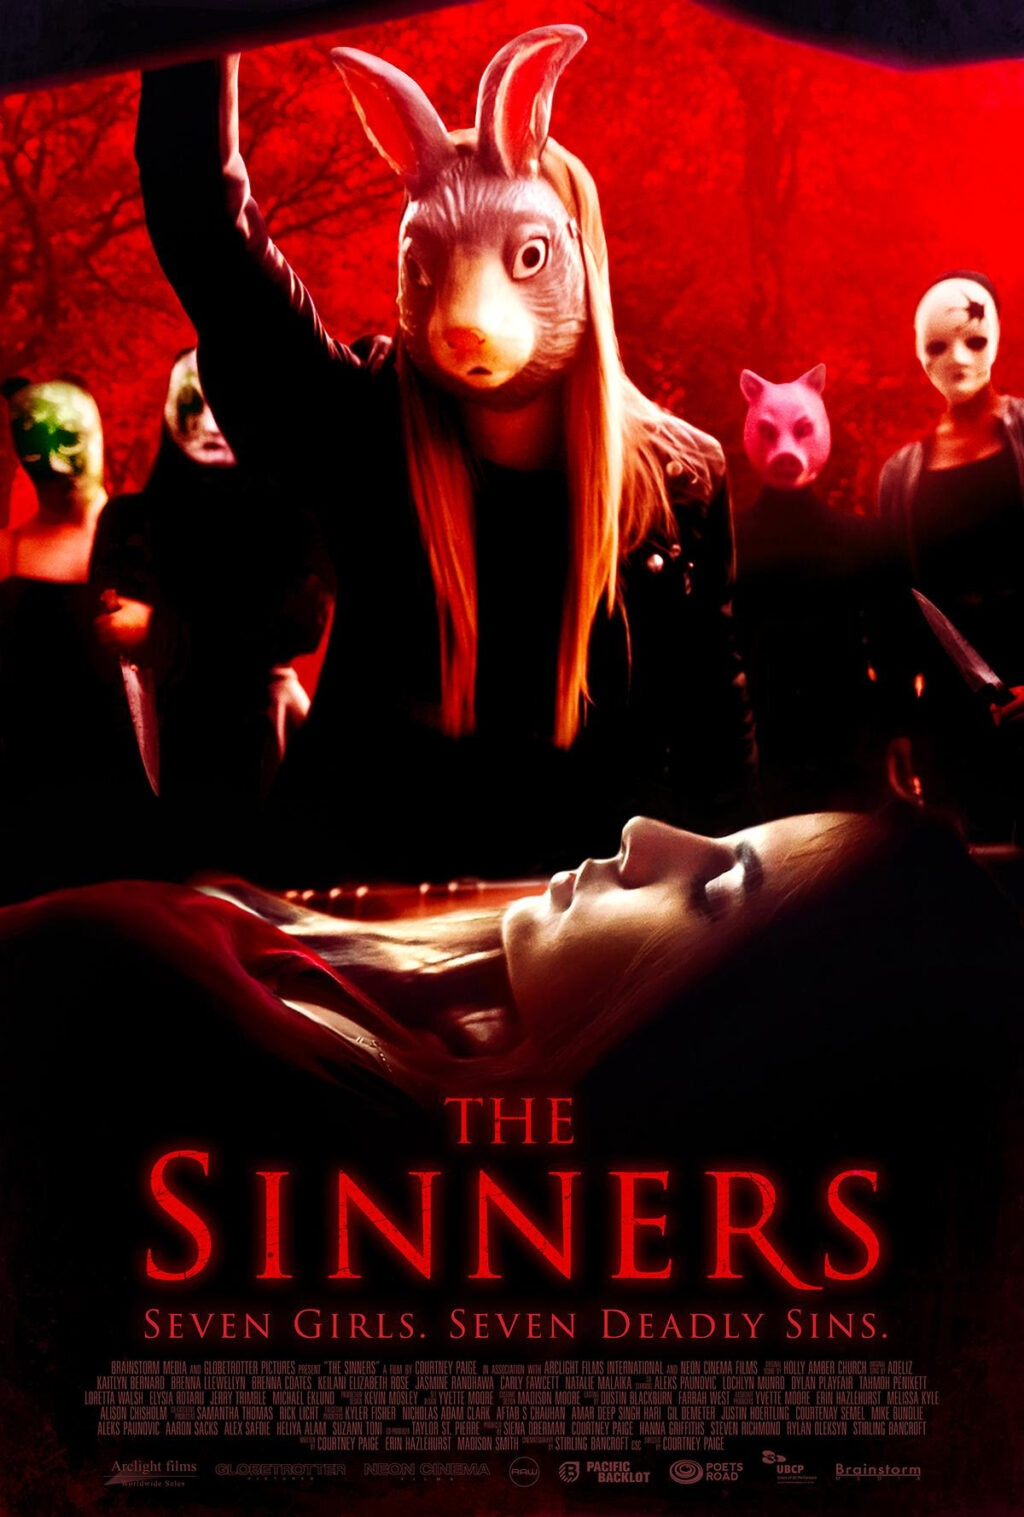 The Sinners Poster 1024x1517 - Video Interview: Director Courtney Paige Talks Debut Feature THE SINNERS